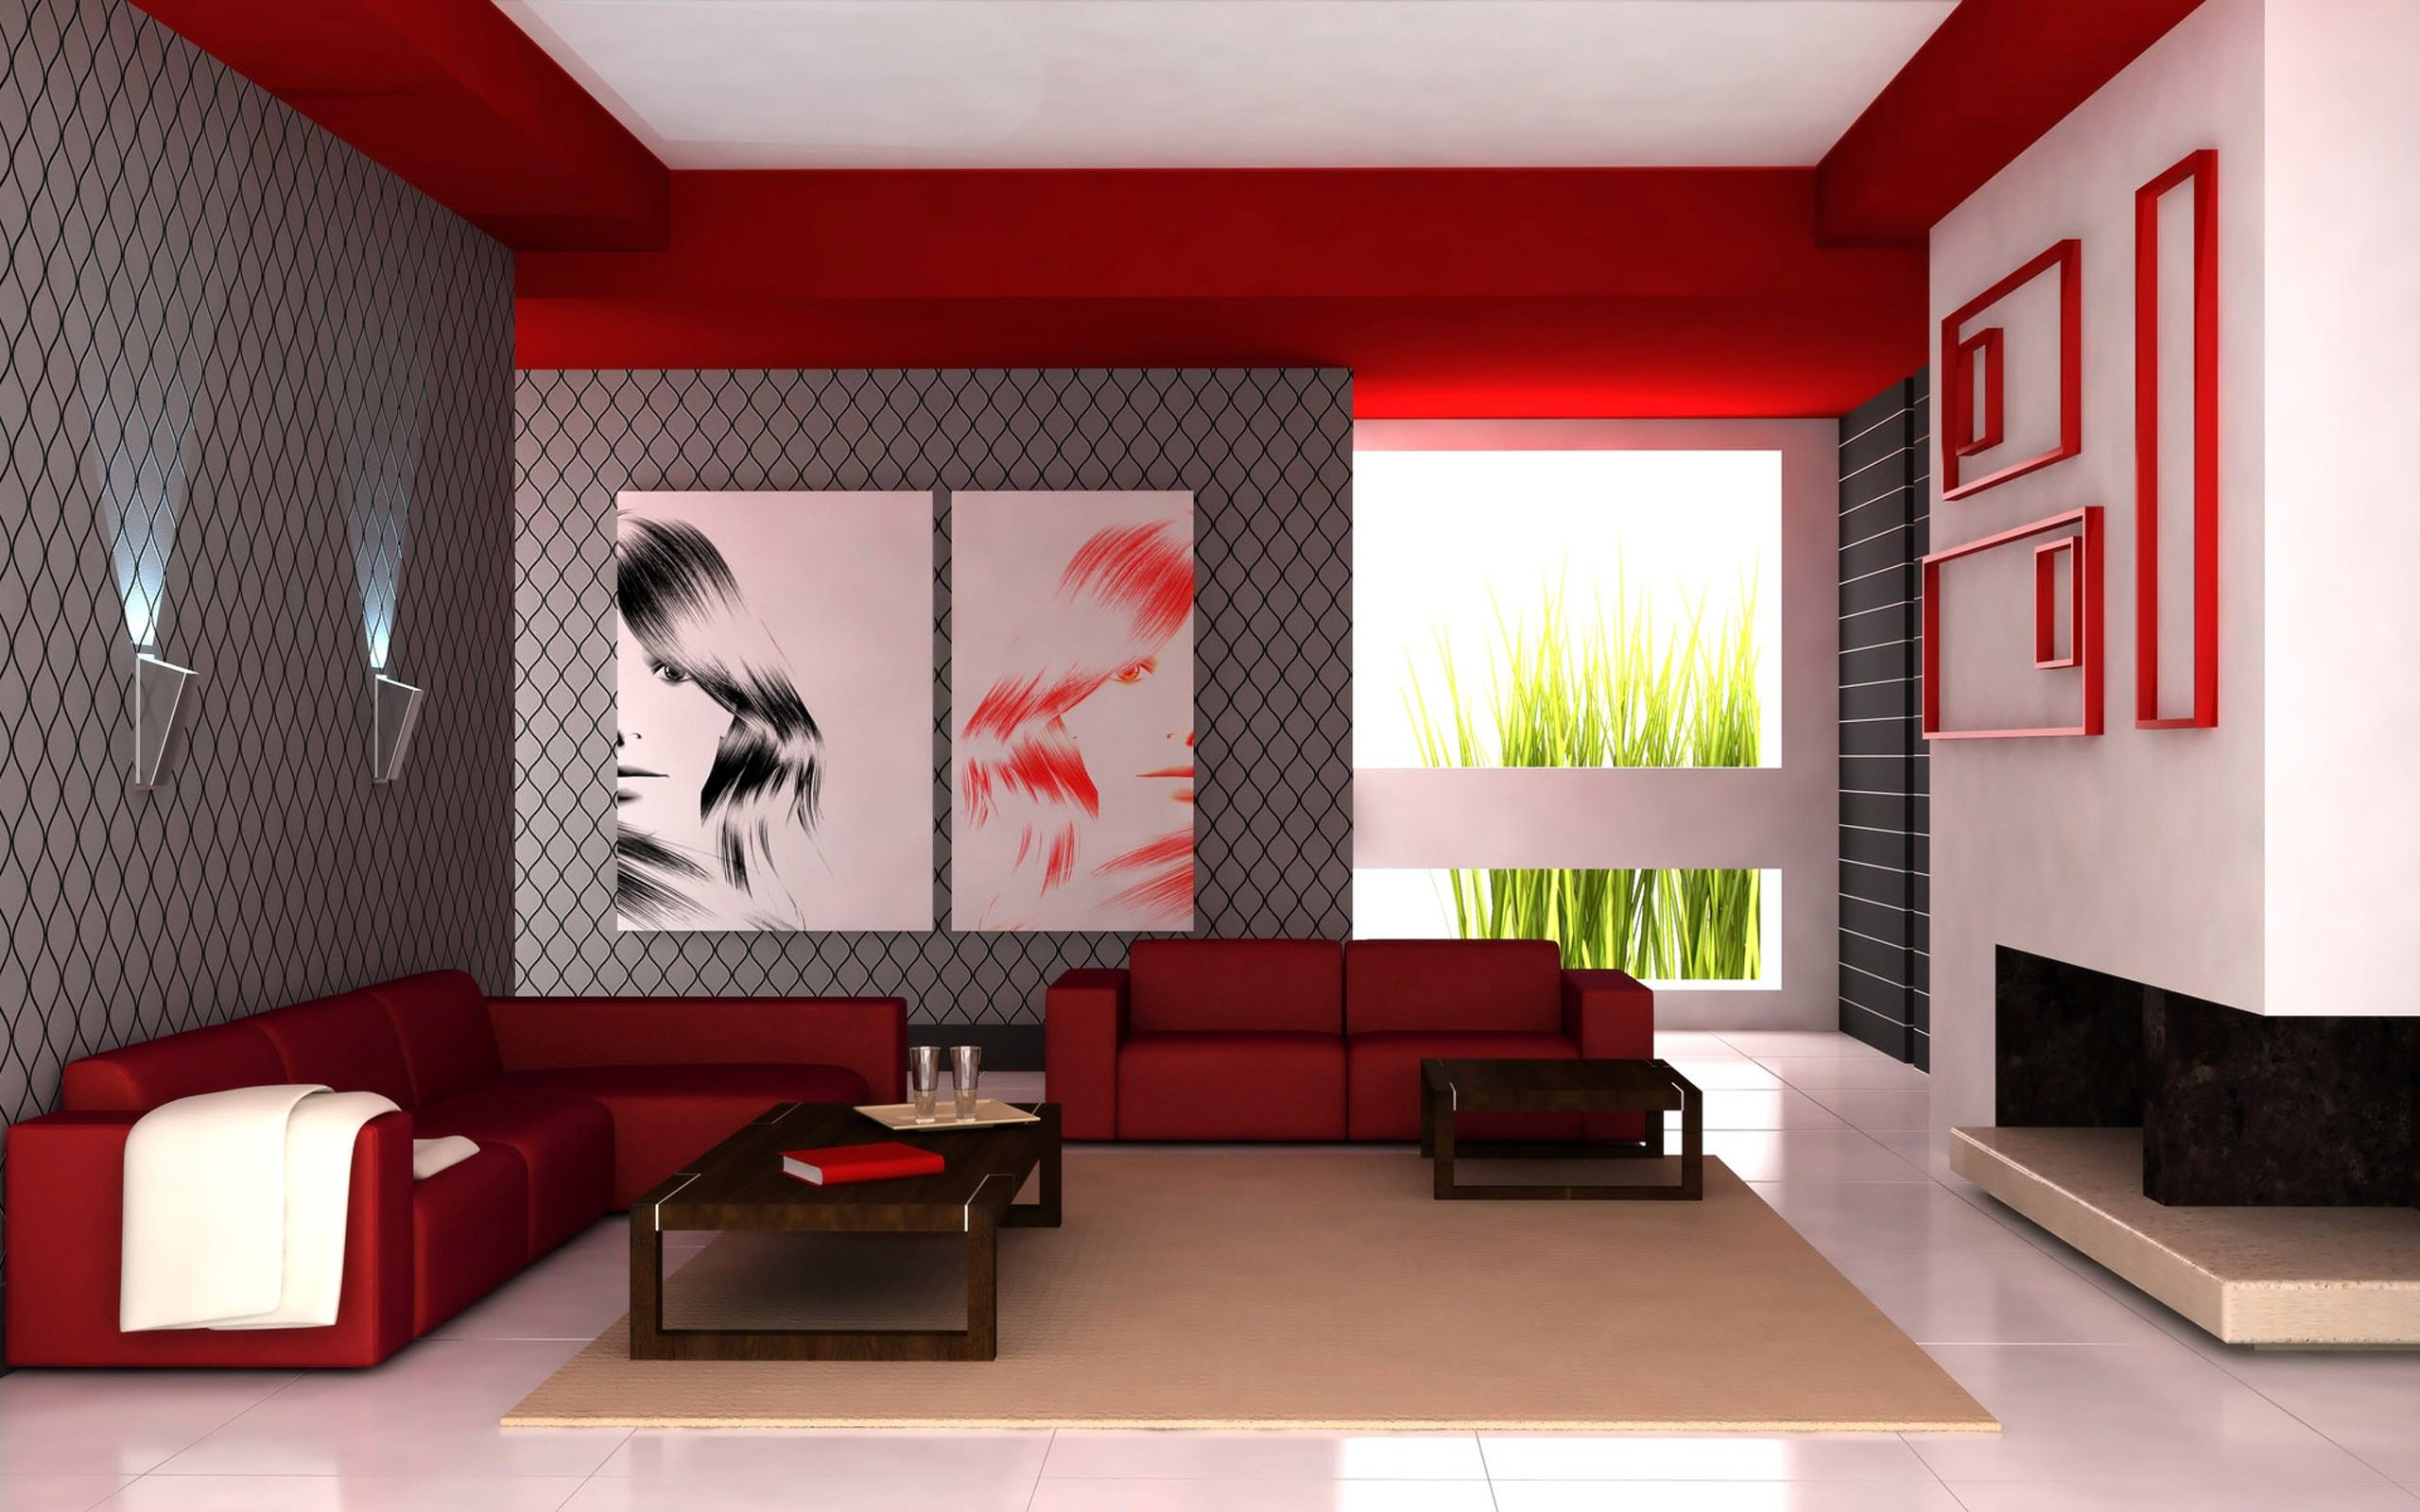 Couch Red Architecture Living Room 2560x1600 Wallpaper Living Room Color Schemes Living Room Colors Paint Colors For Living Room